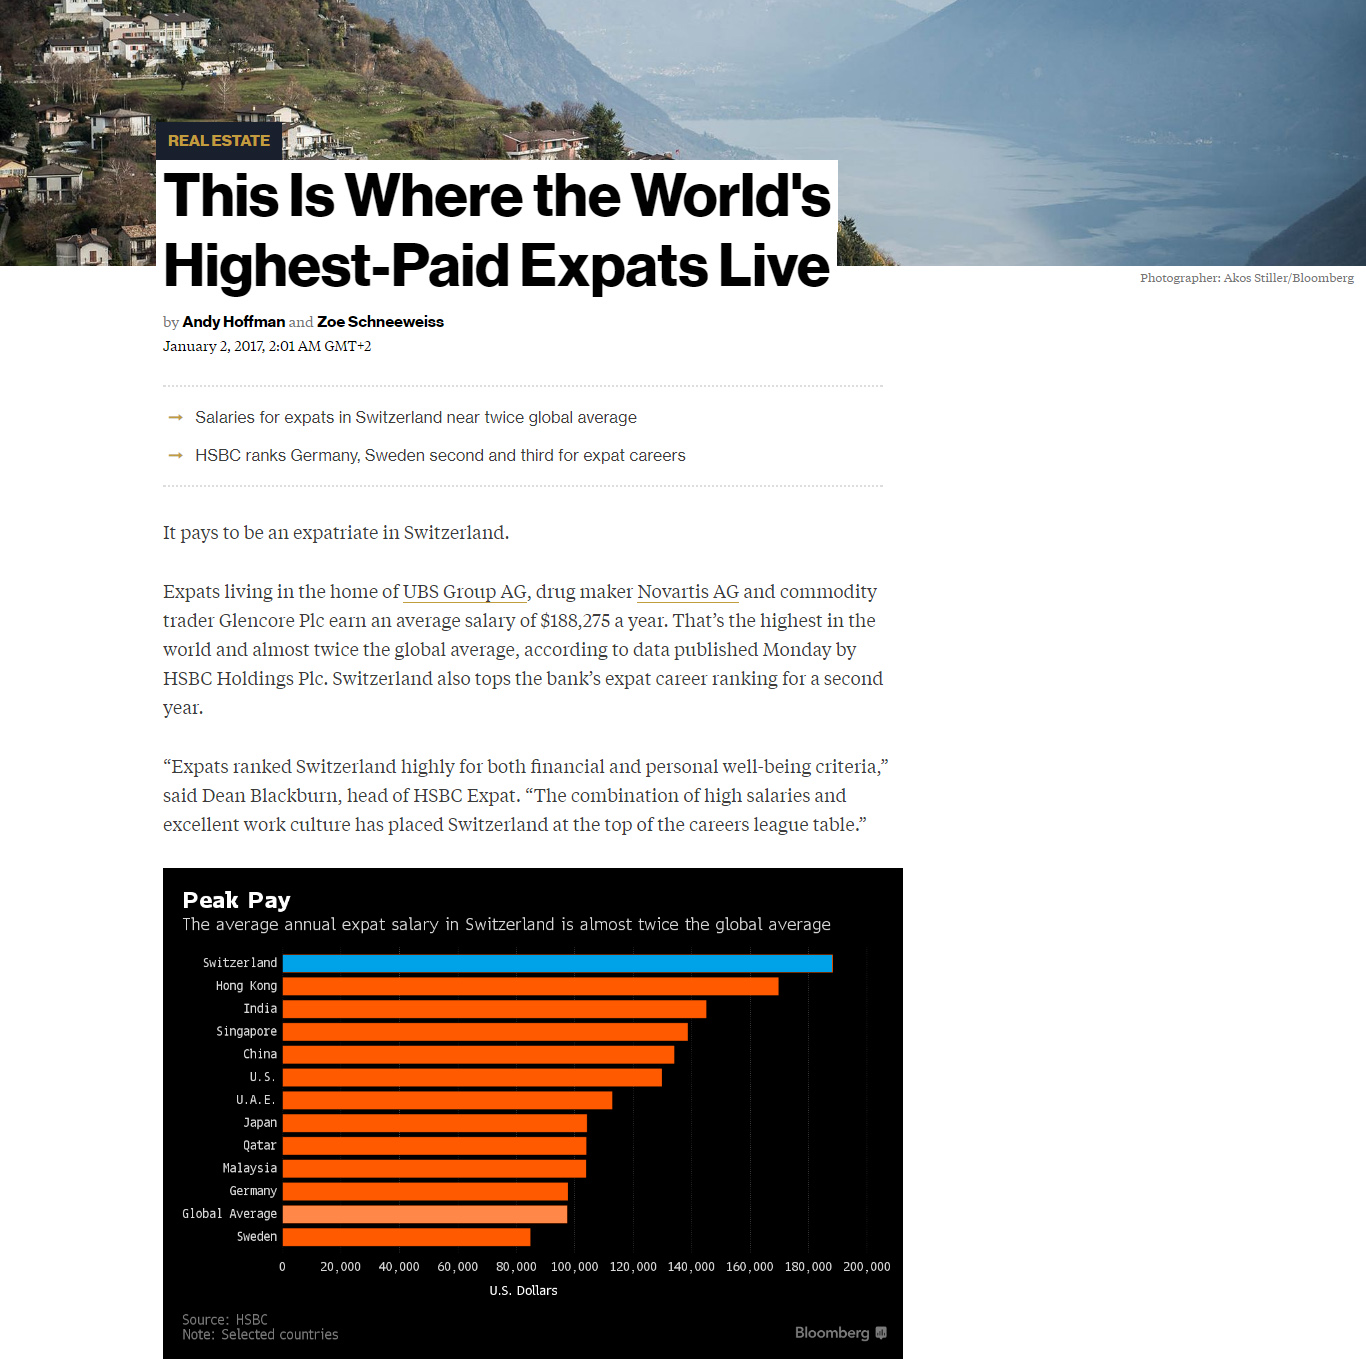 Pdf: This is where the world's highest-paid expats live - Stonehard